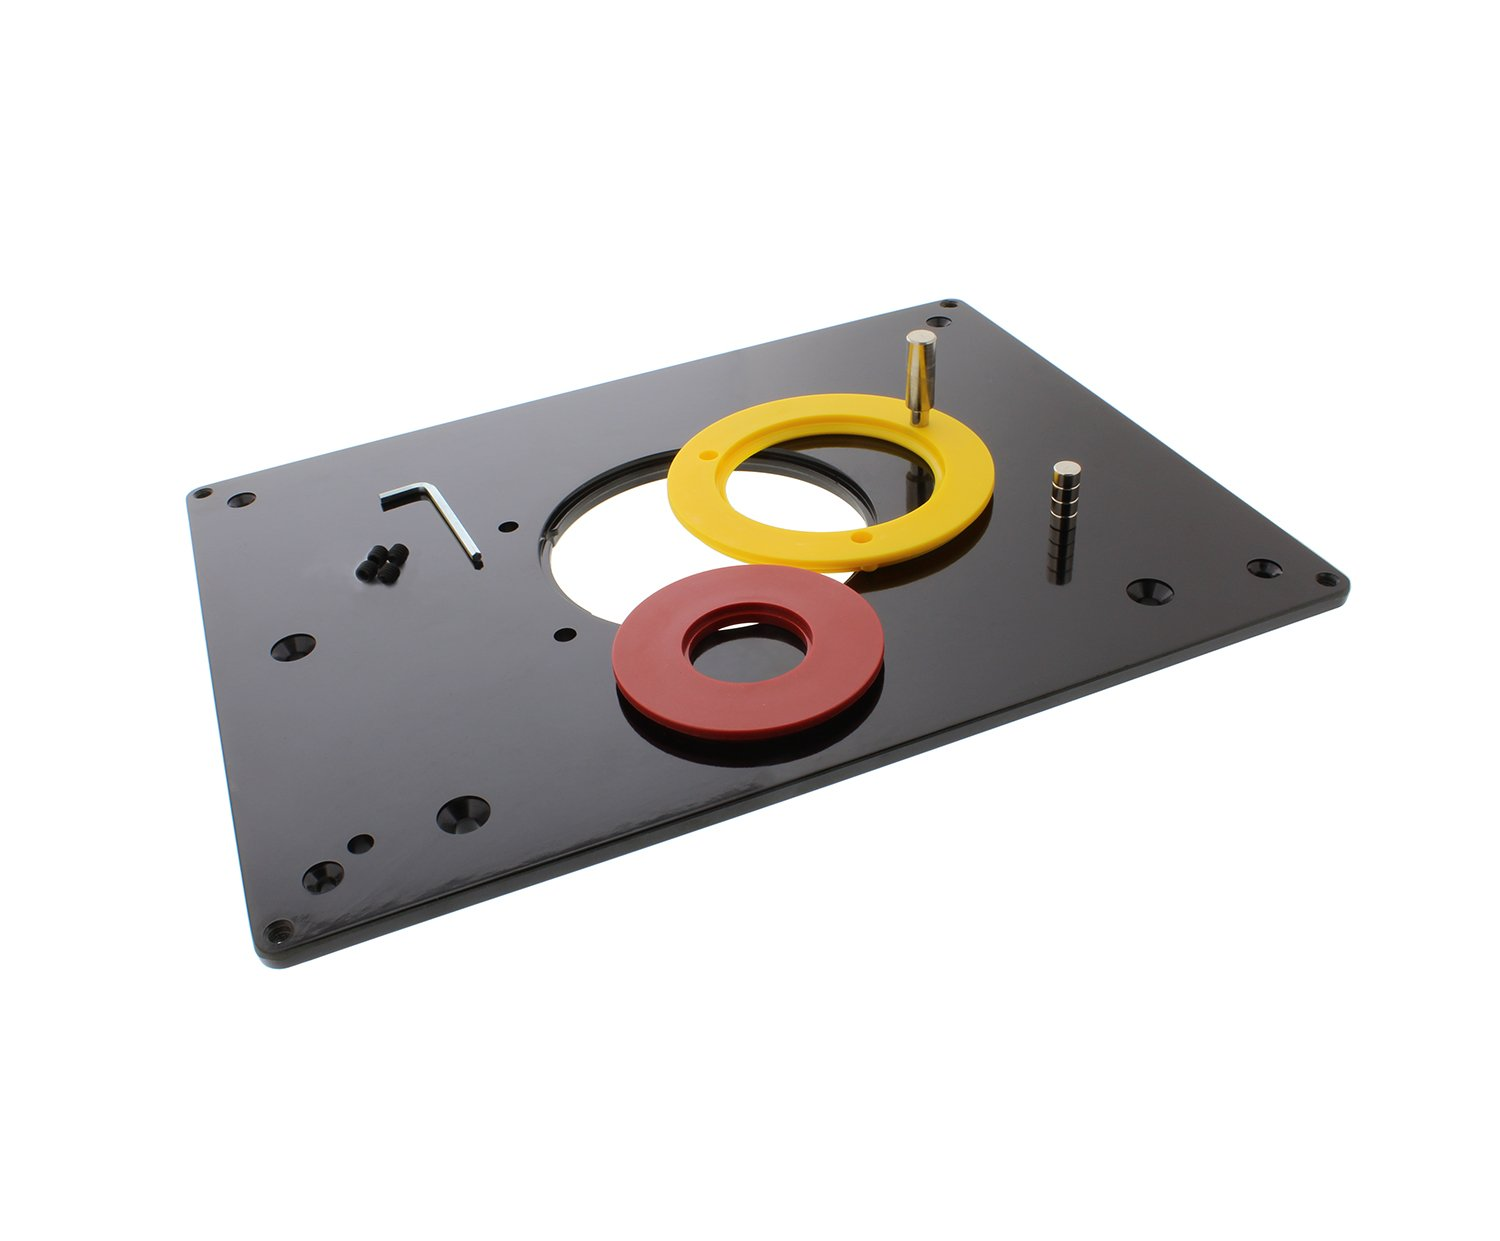 DCT Universal Router Plate Kit